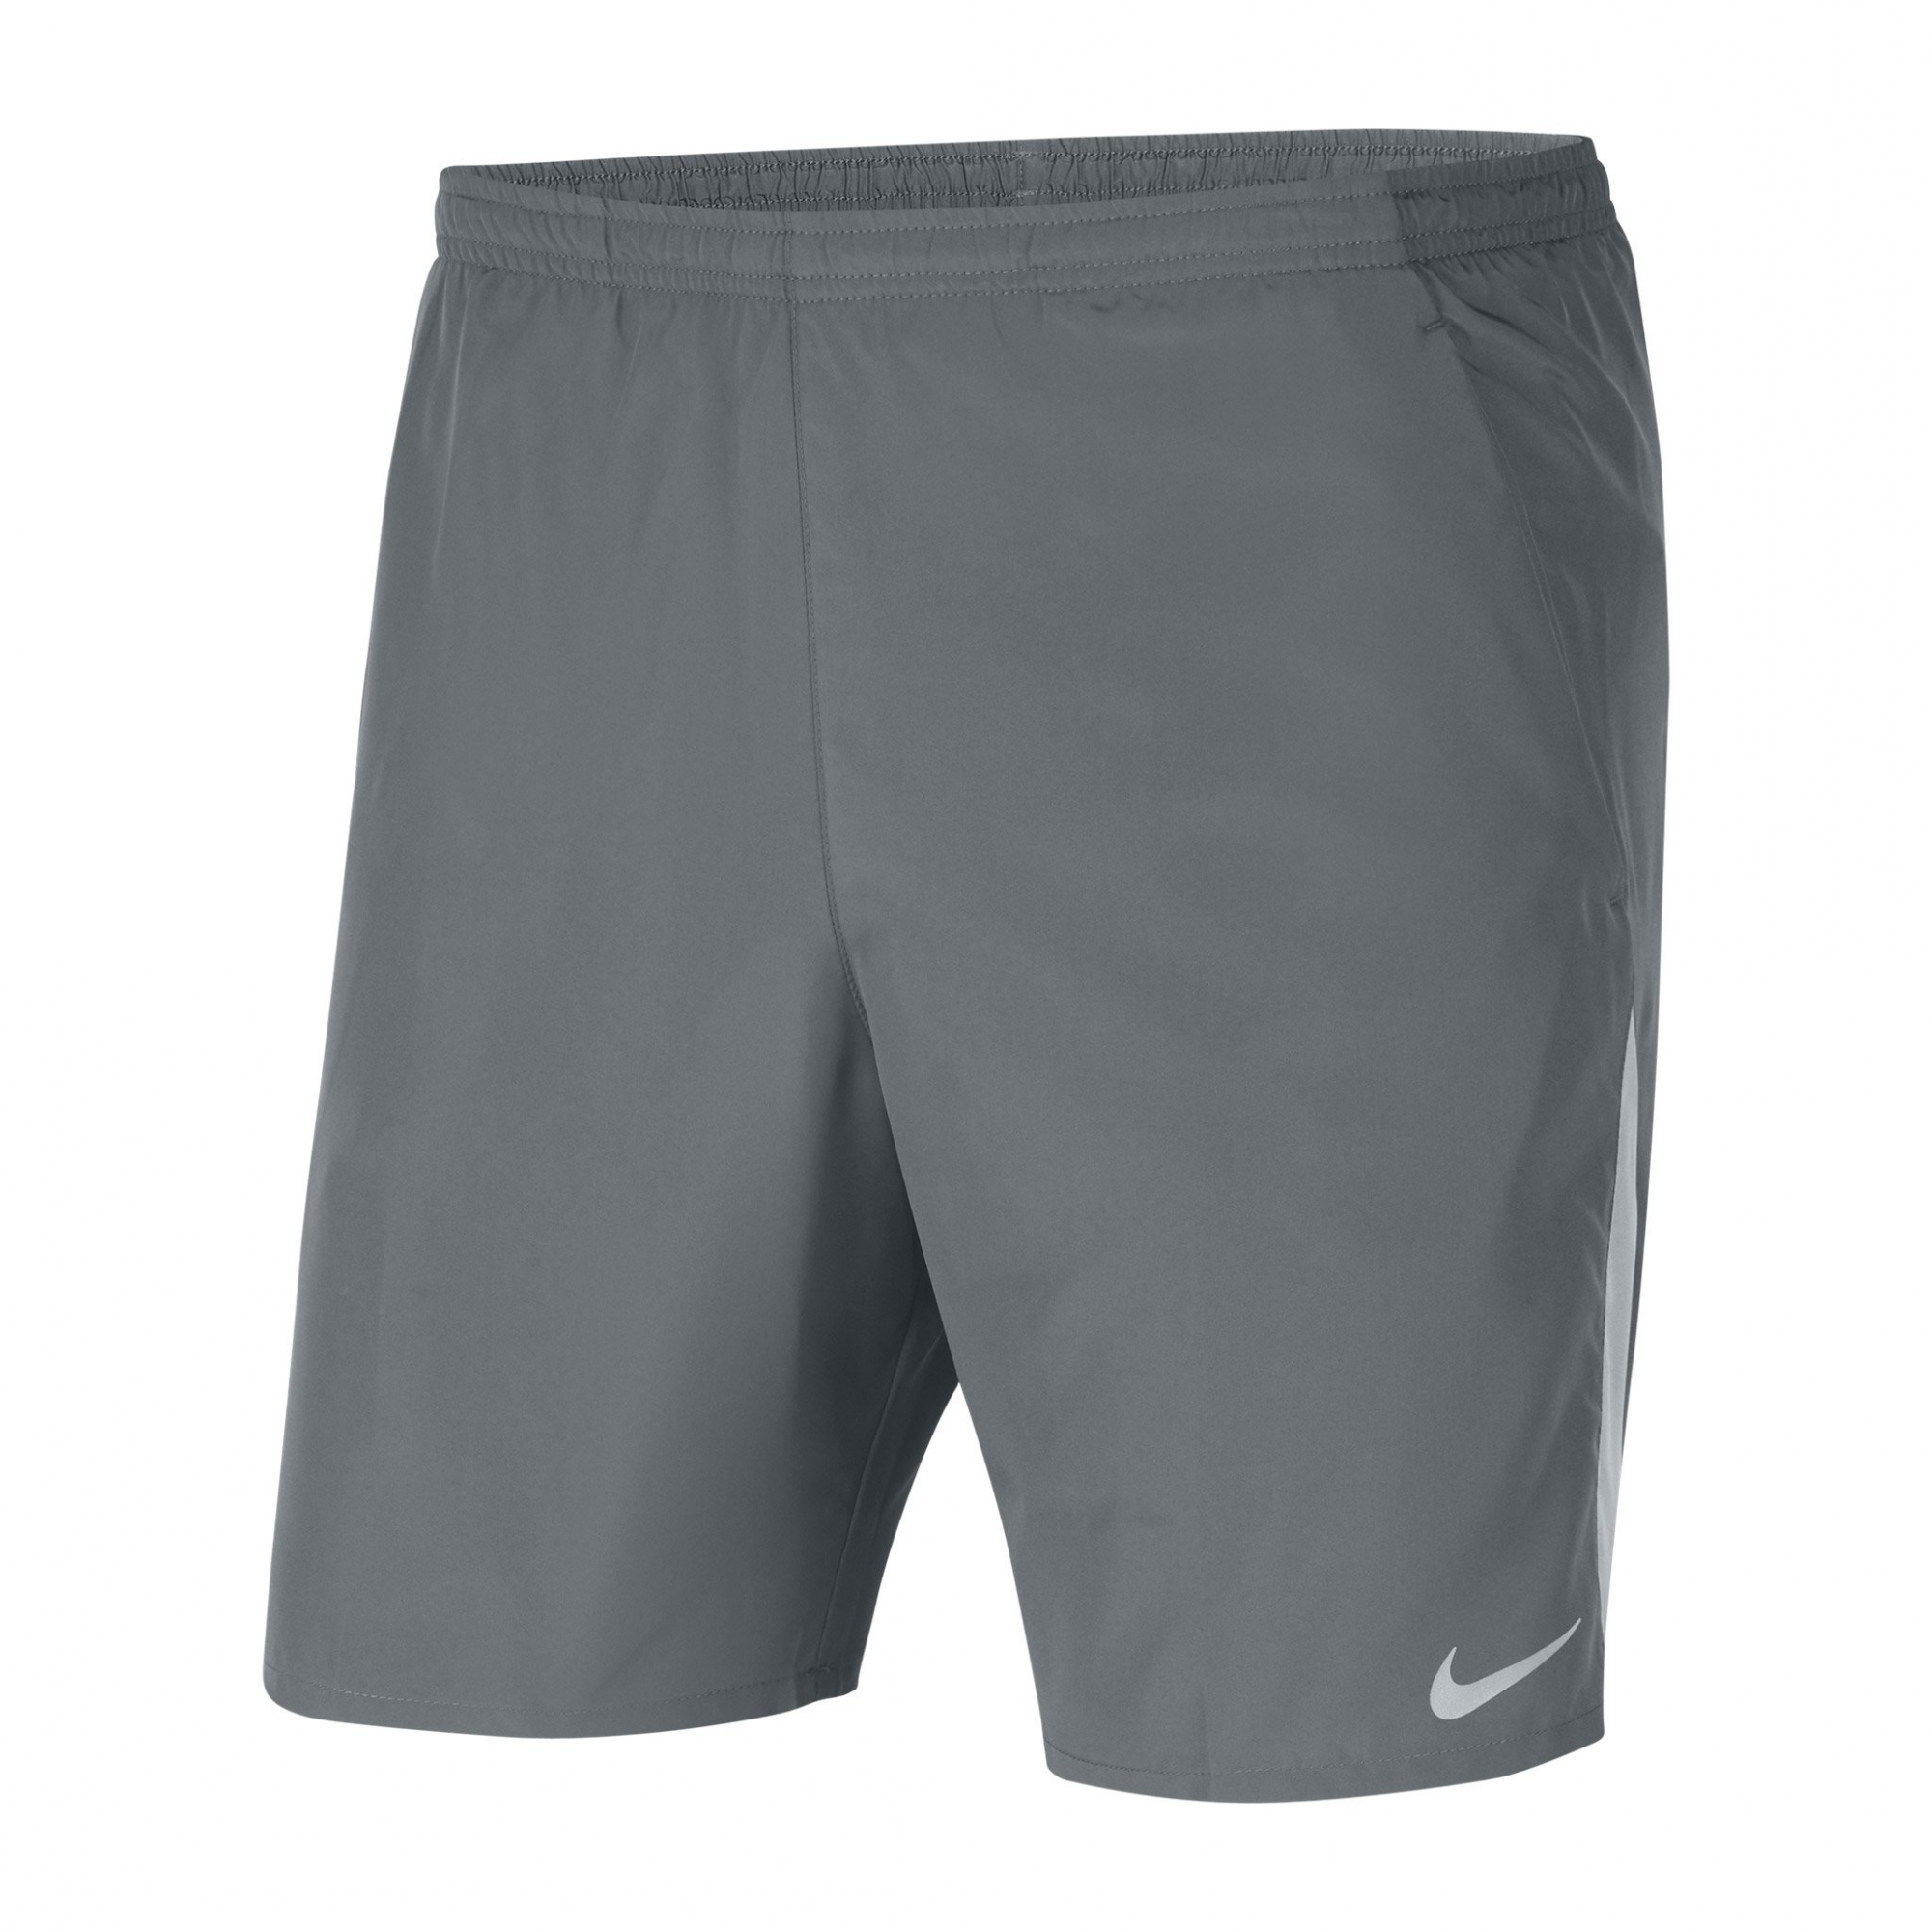 Shorts Nike Run 7in Masculino  - Ferron Sport